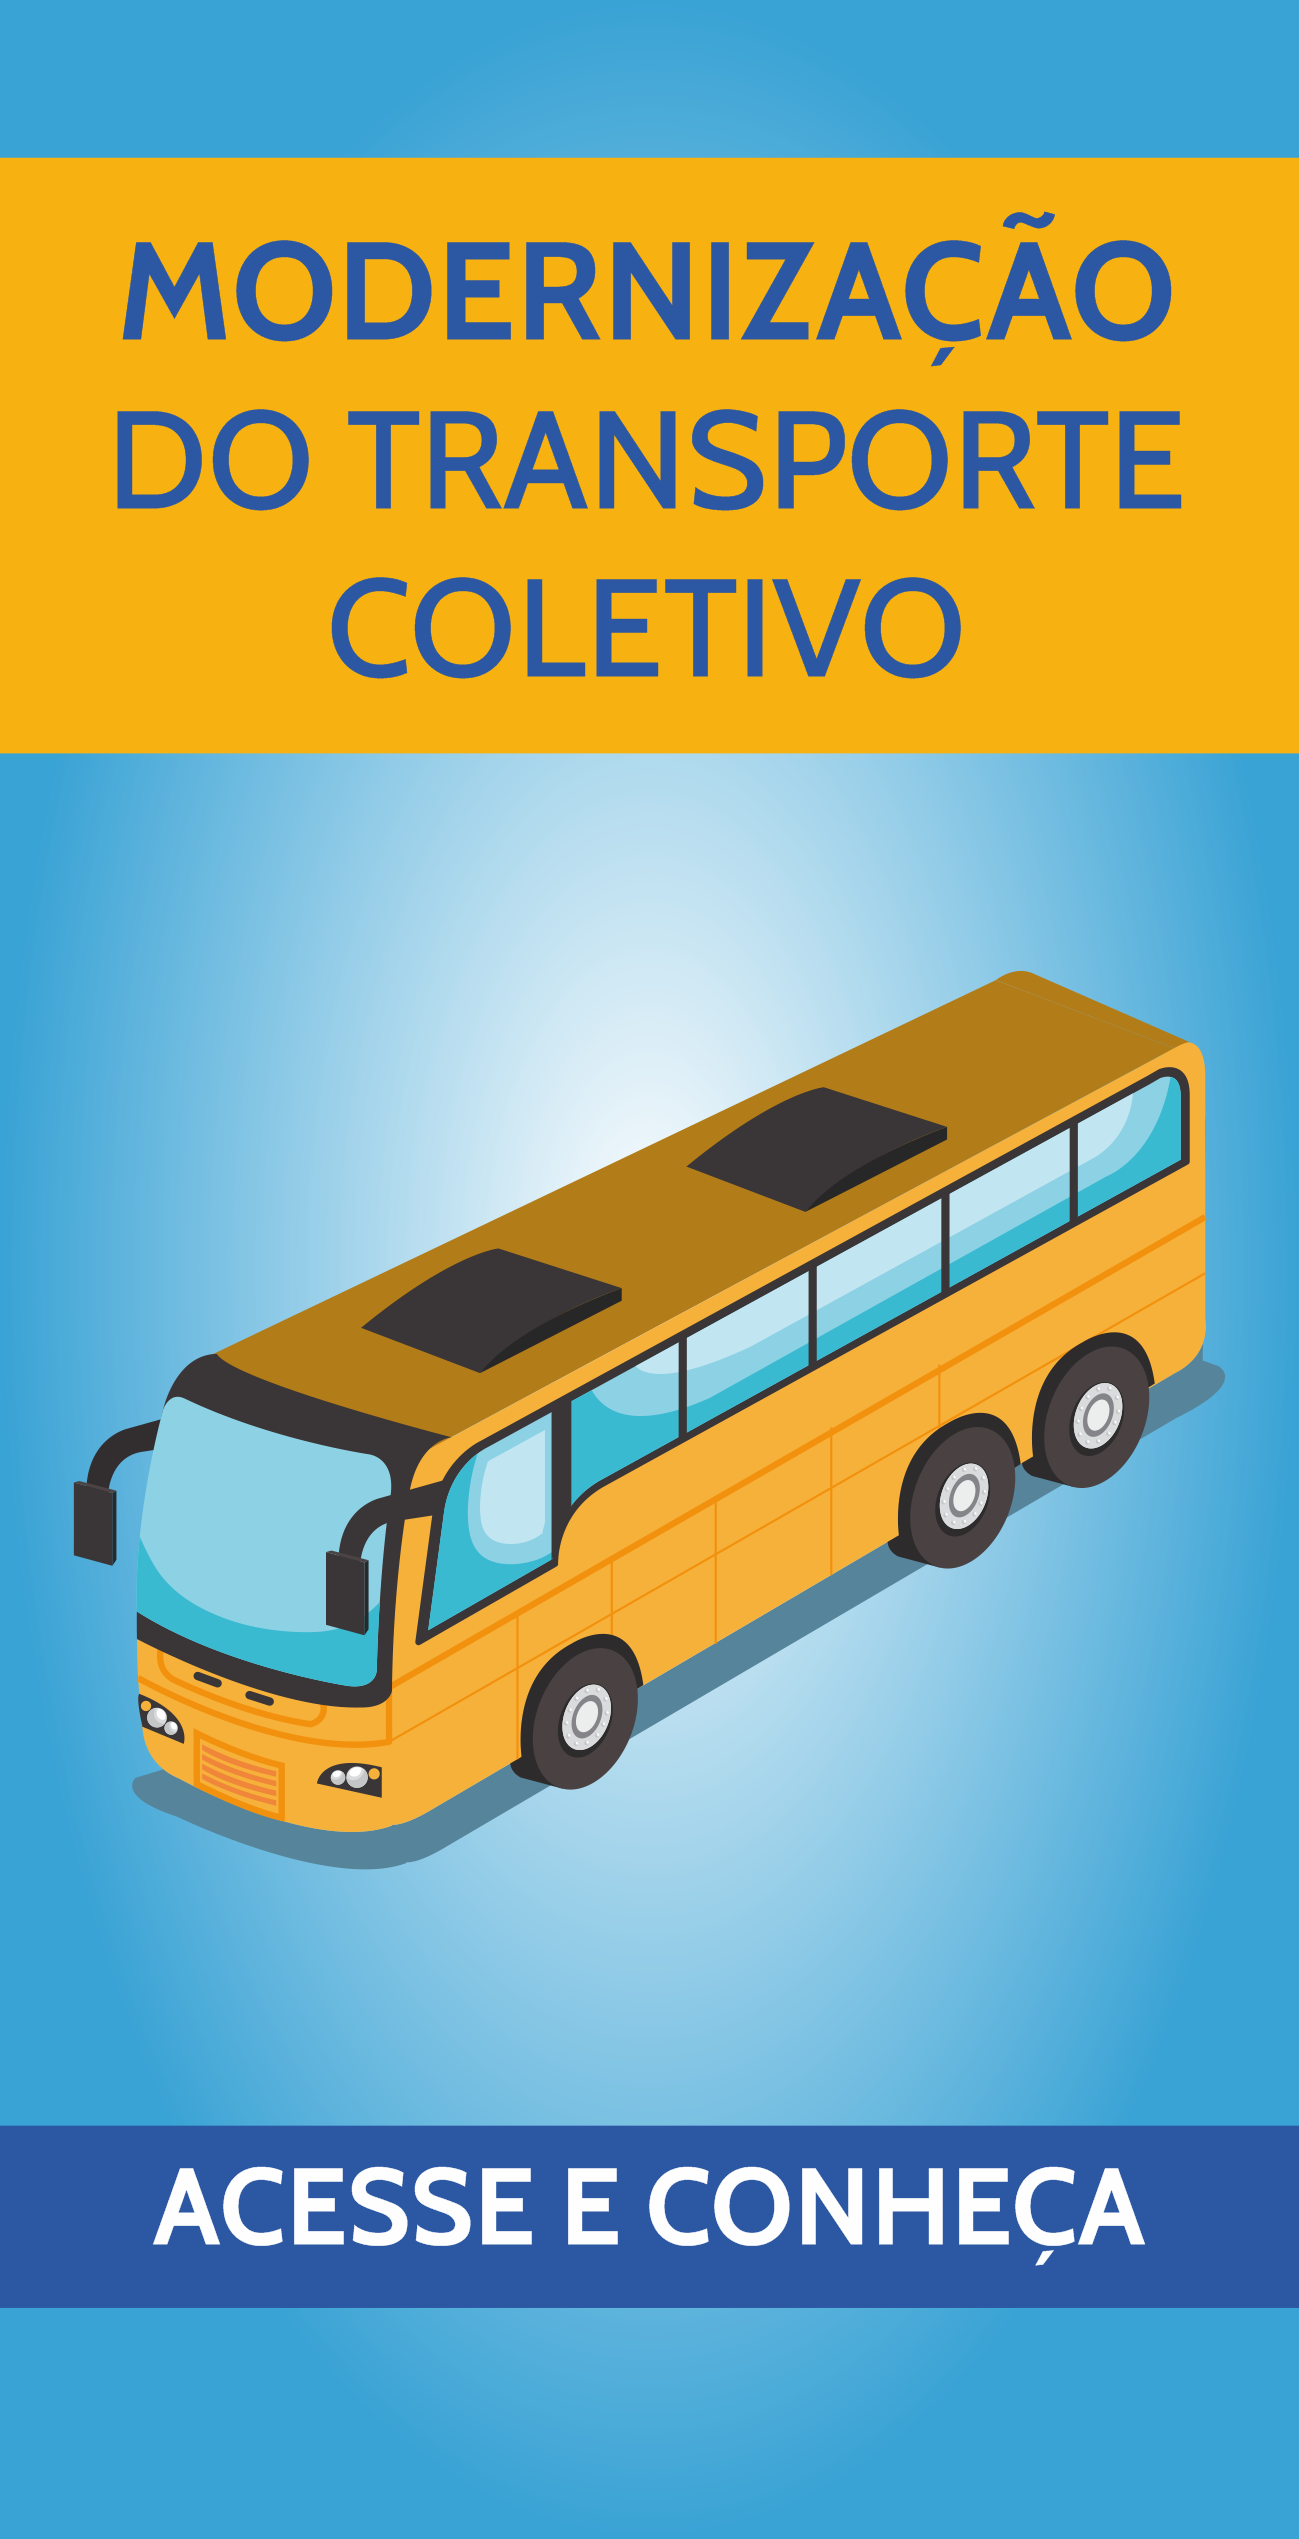 Modernização Transporte Coletivo